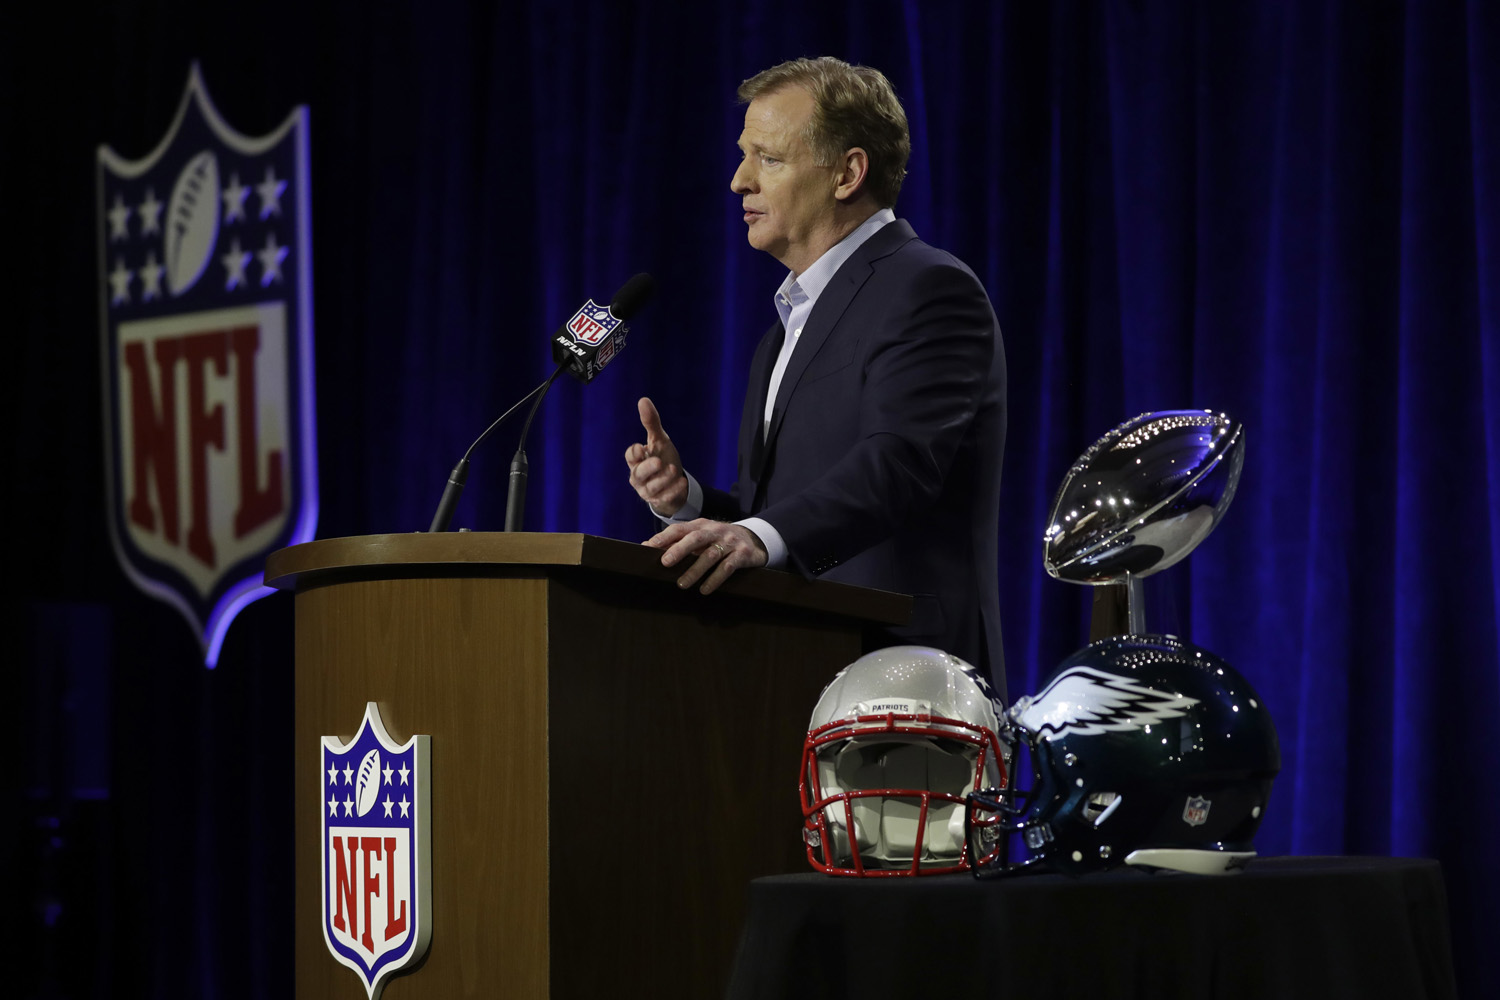 NFL Commissioner Roger Goodell speaks during a news conference in advance of the Super Bowl 52 football game, Wednesday, Jan. 31, 2018, in Minneapolis. (AP Photo/Matt Slocum)